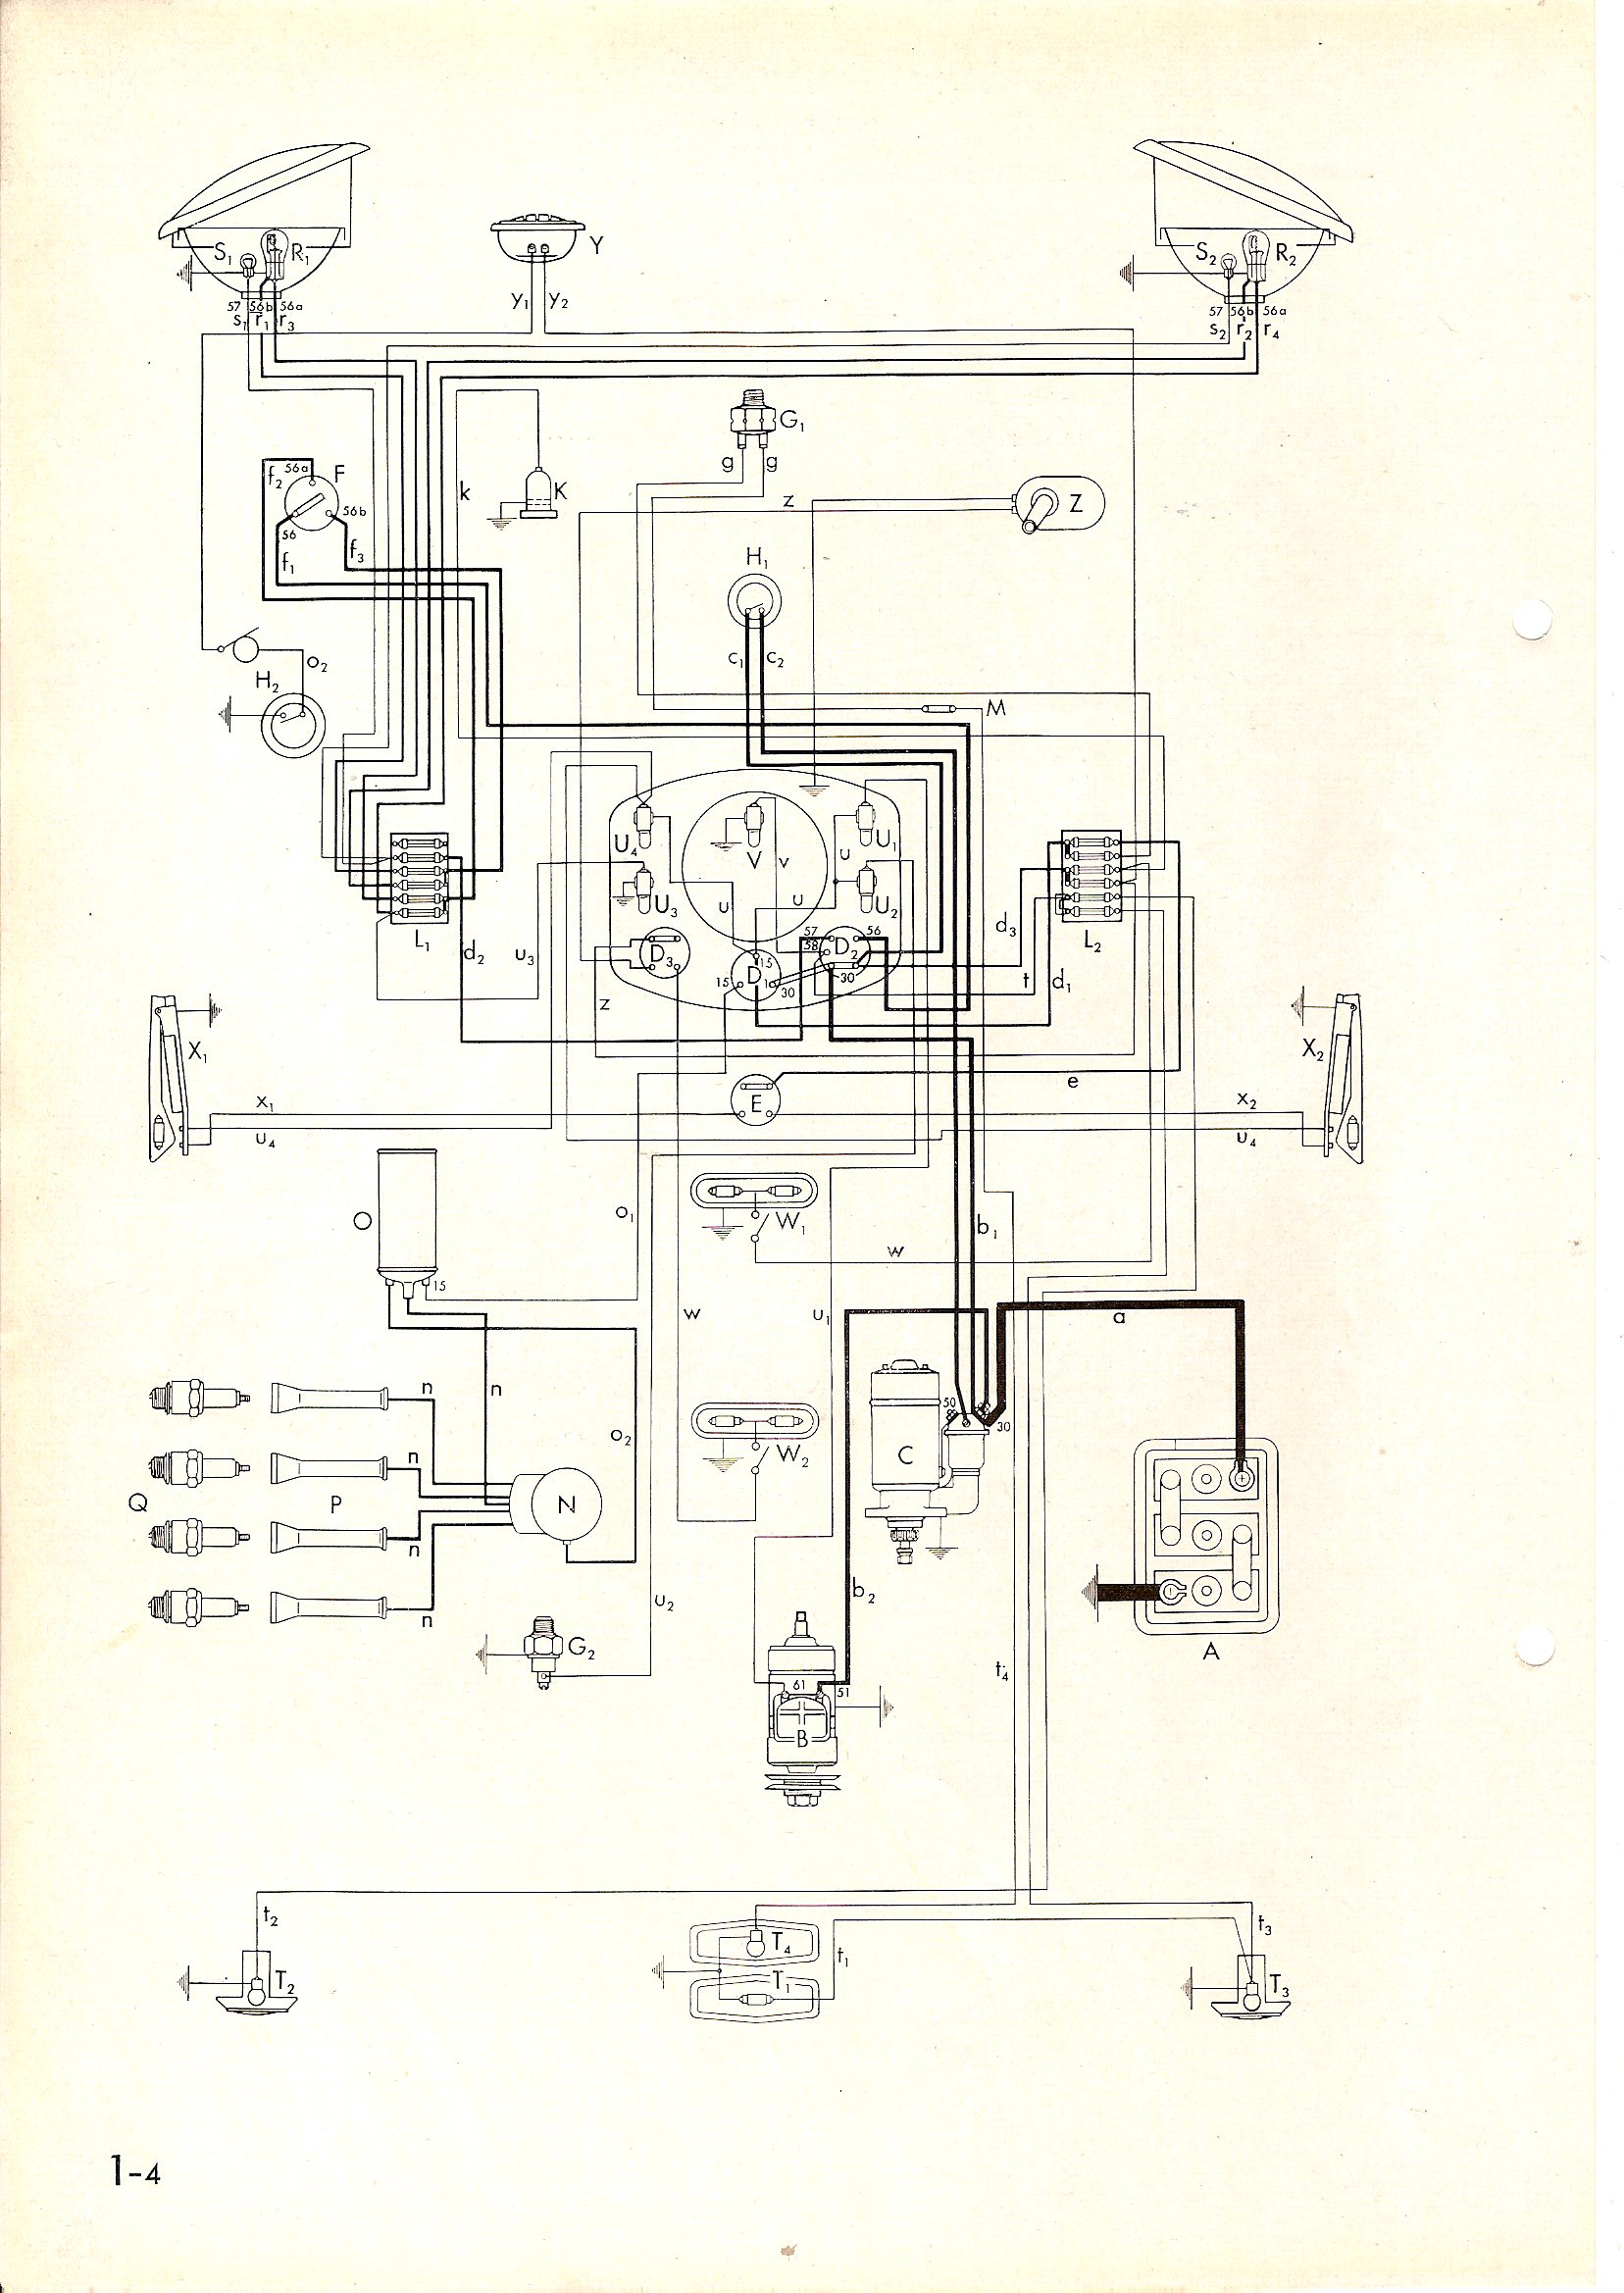 1974 vw beetle wiring diagram 1968 2006 vw beetle wiring diagrams electrics vw beetle negative earth - page 2 - vw forum ...